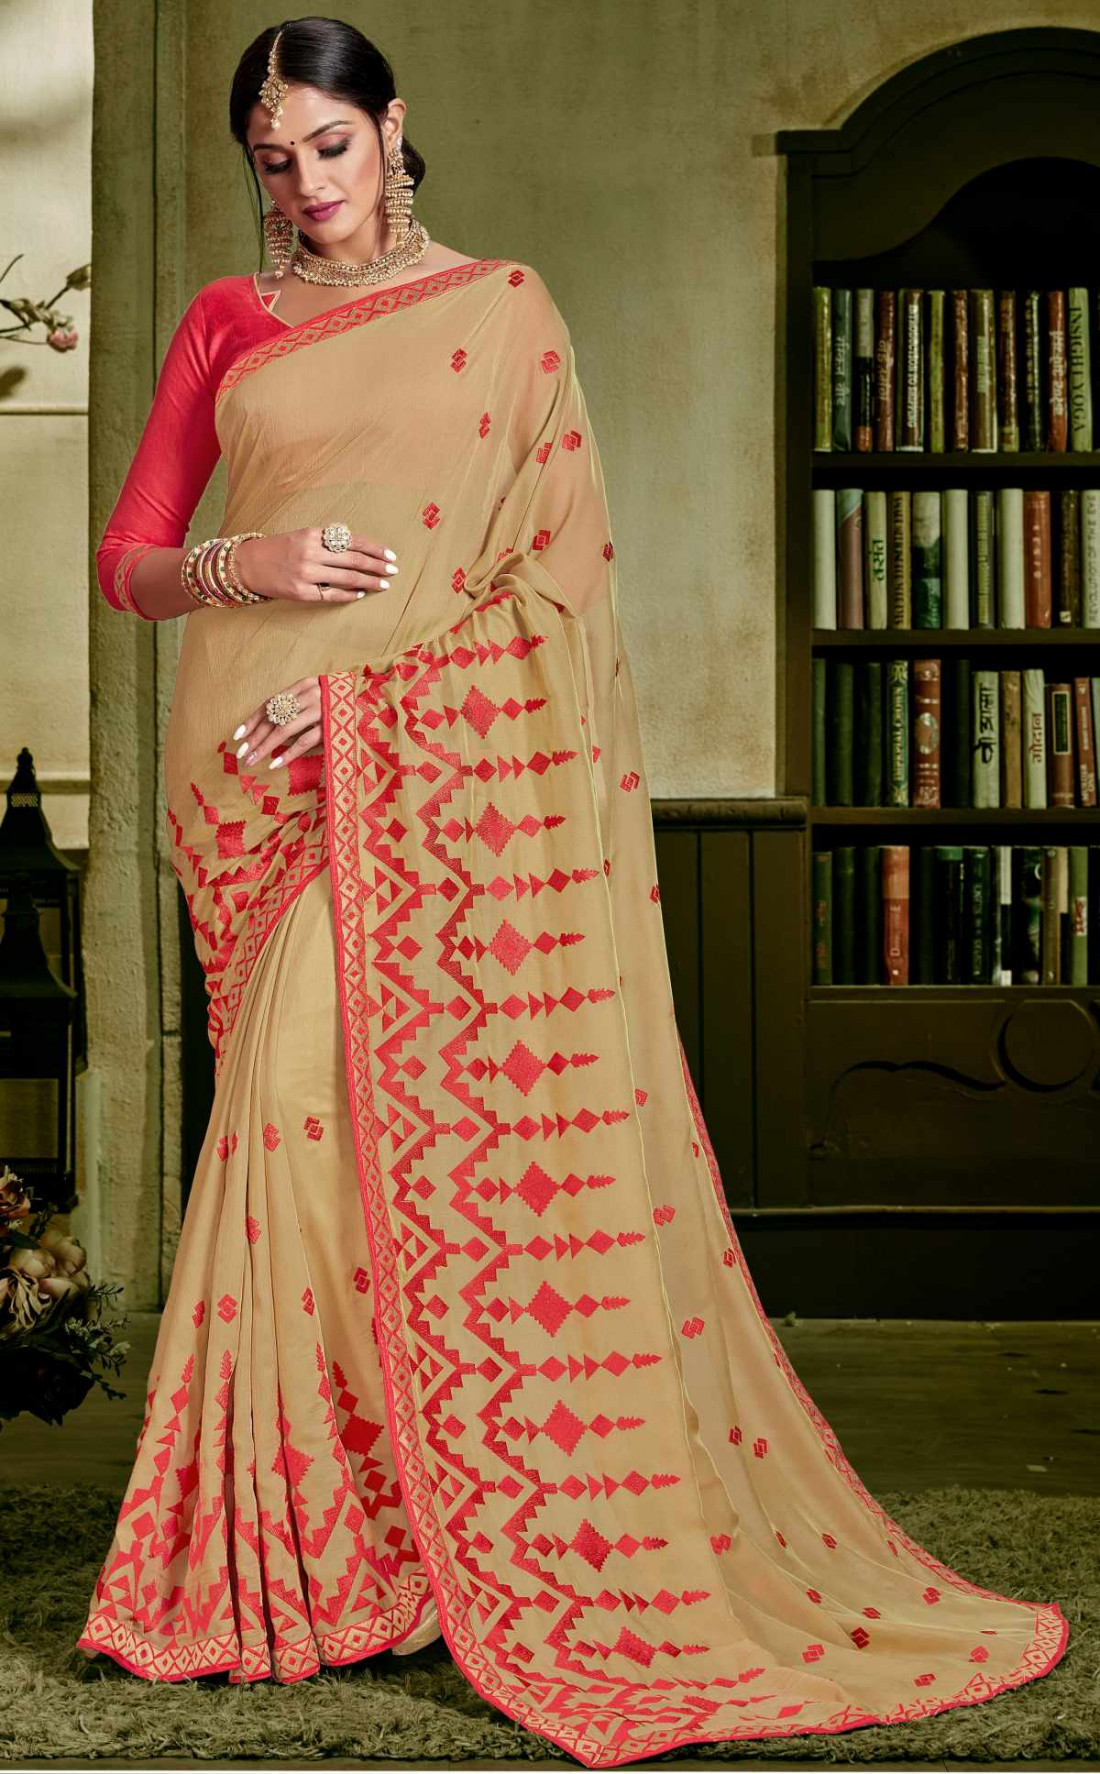 b37a1a3ac2 sudarshan Family Store Rawsilk saree overall body Printed and Embroidery  work with self design Blouse piece